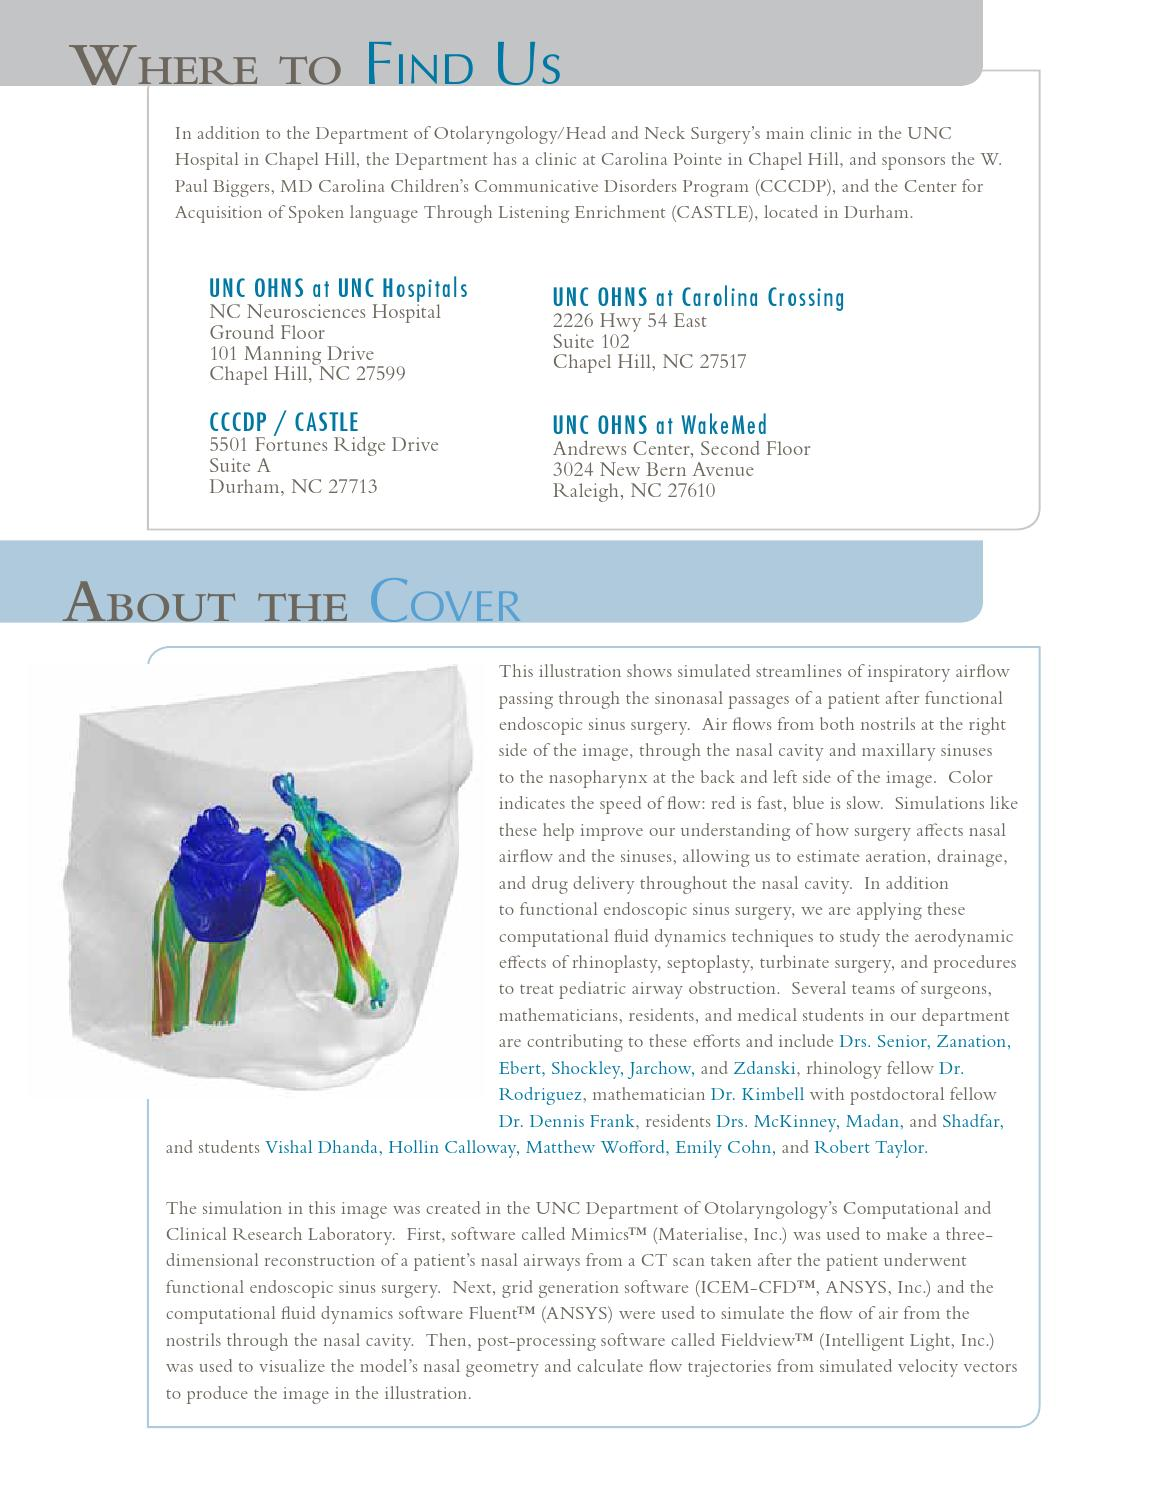 2012 UNC-Chapel Hill ENT Annual Report by ndjennings - issuu